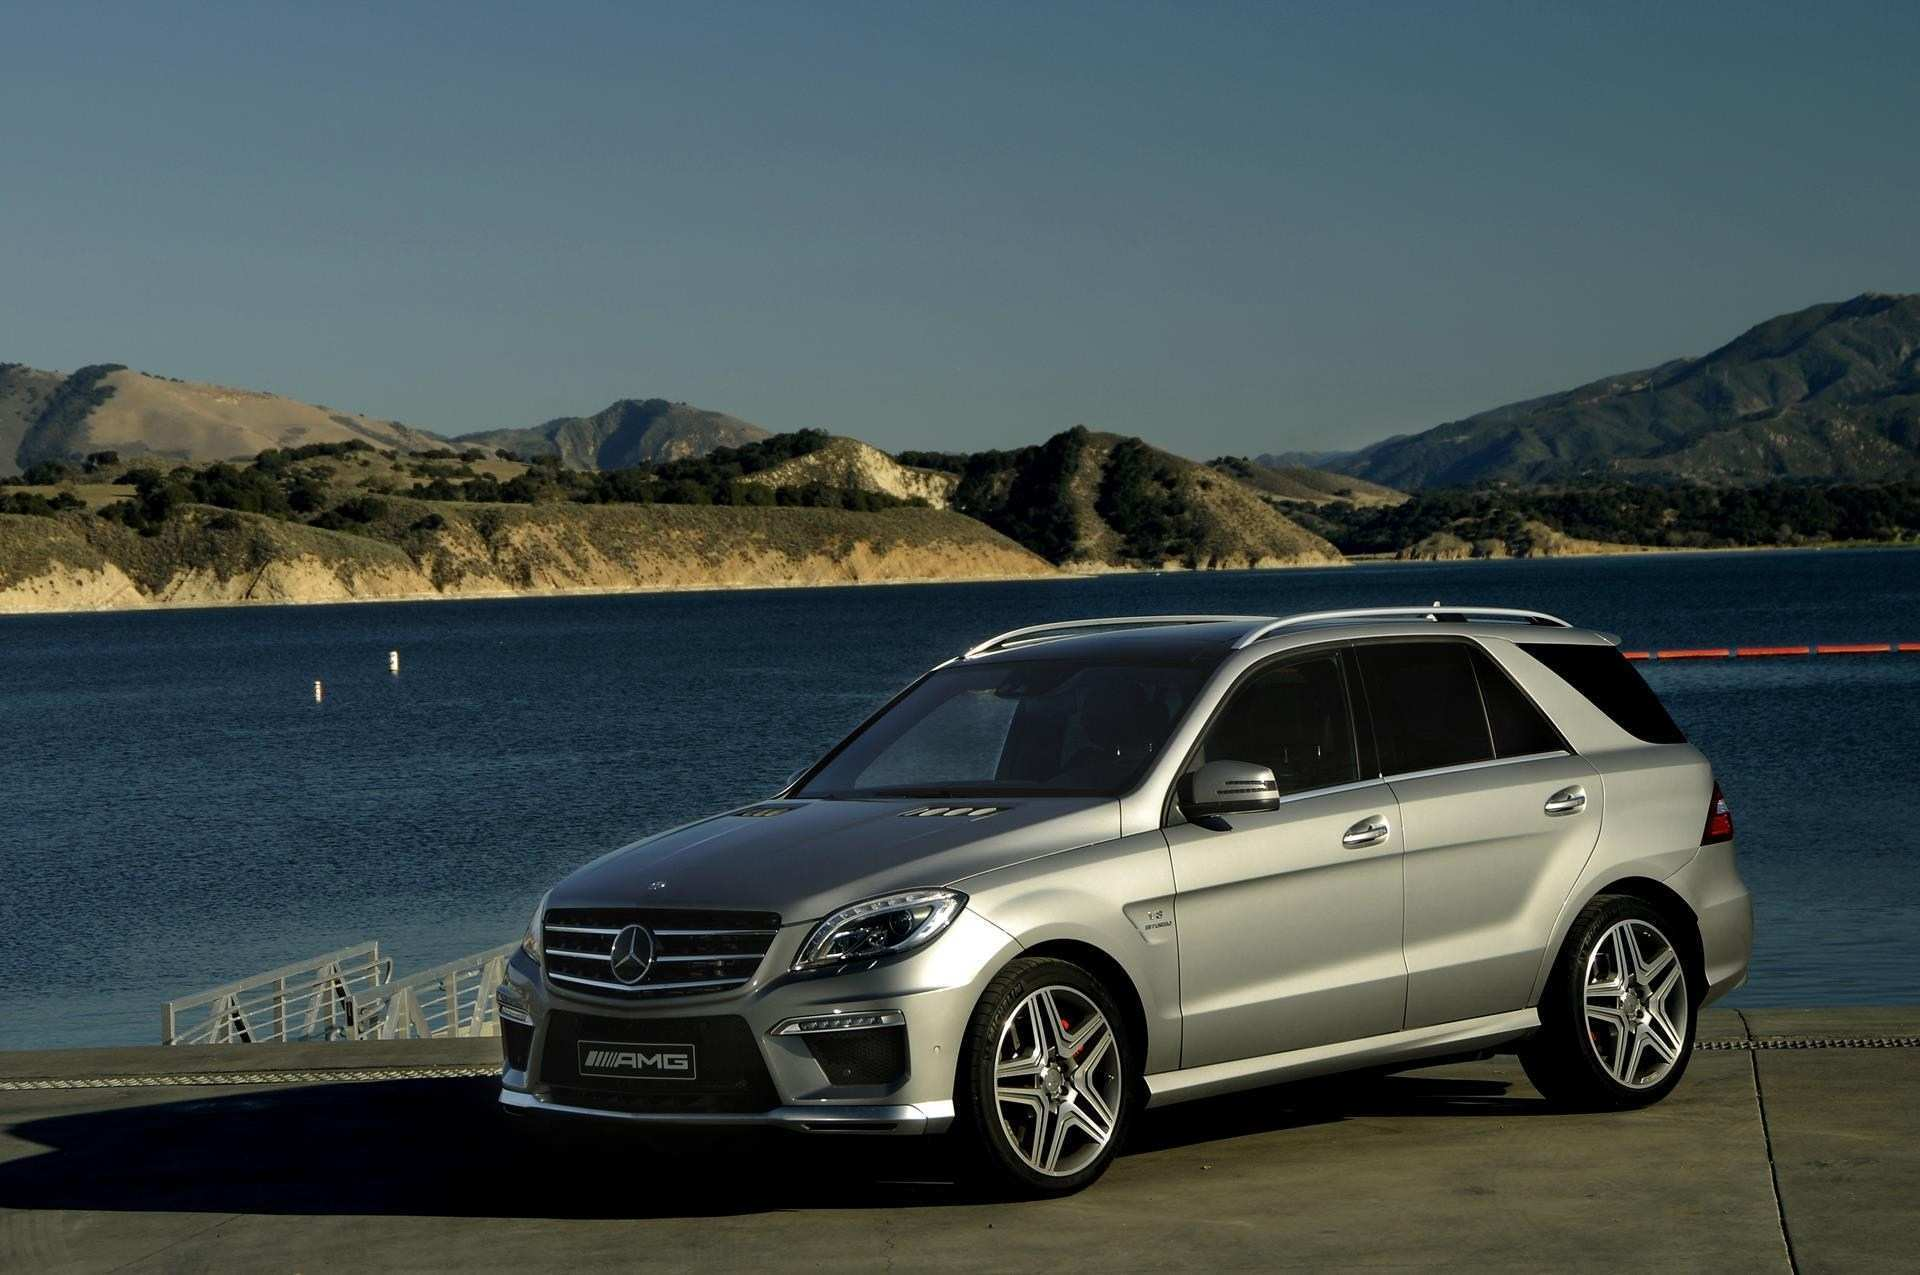 57 All New Mercedes M Class 2020 Release Date by Mercedes M Class 2020